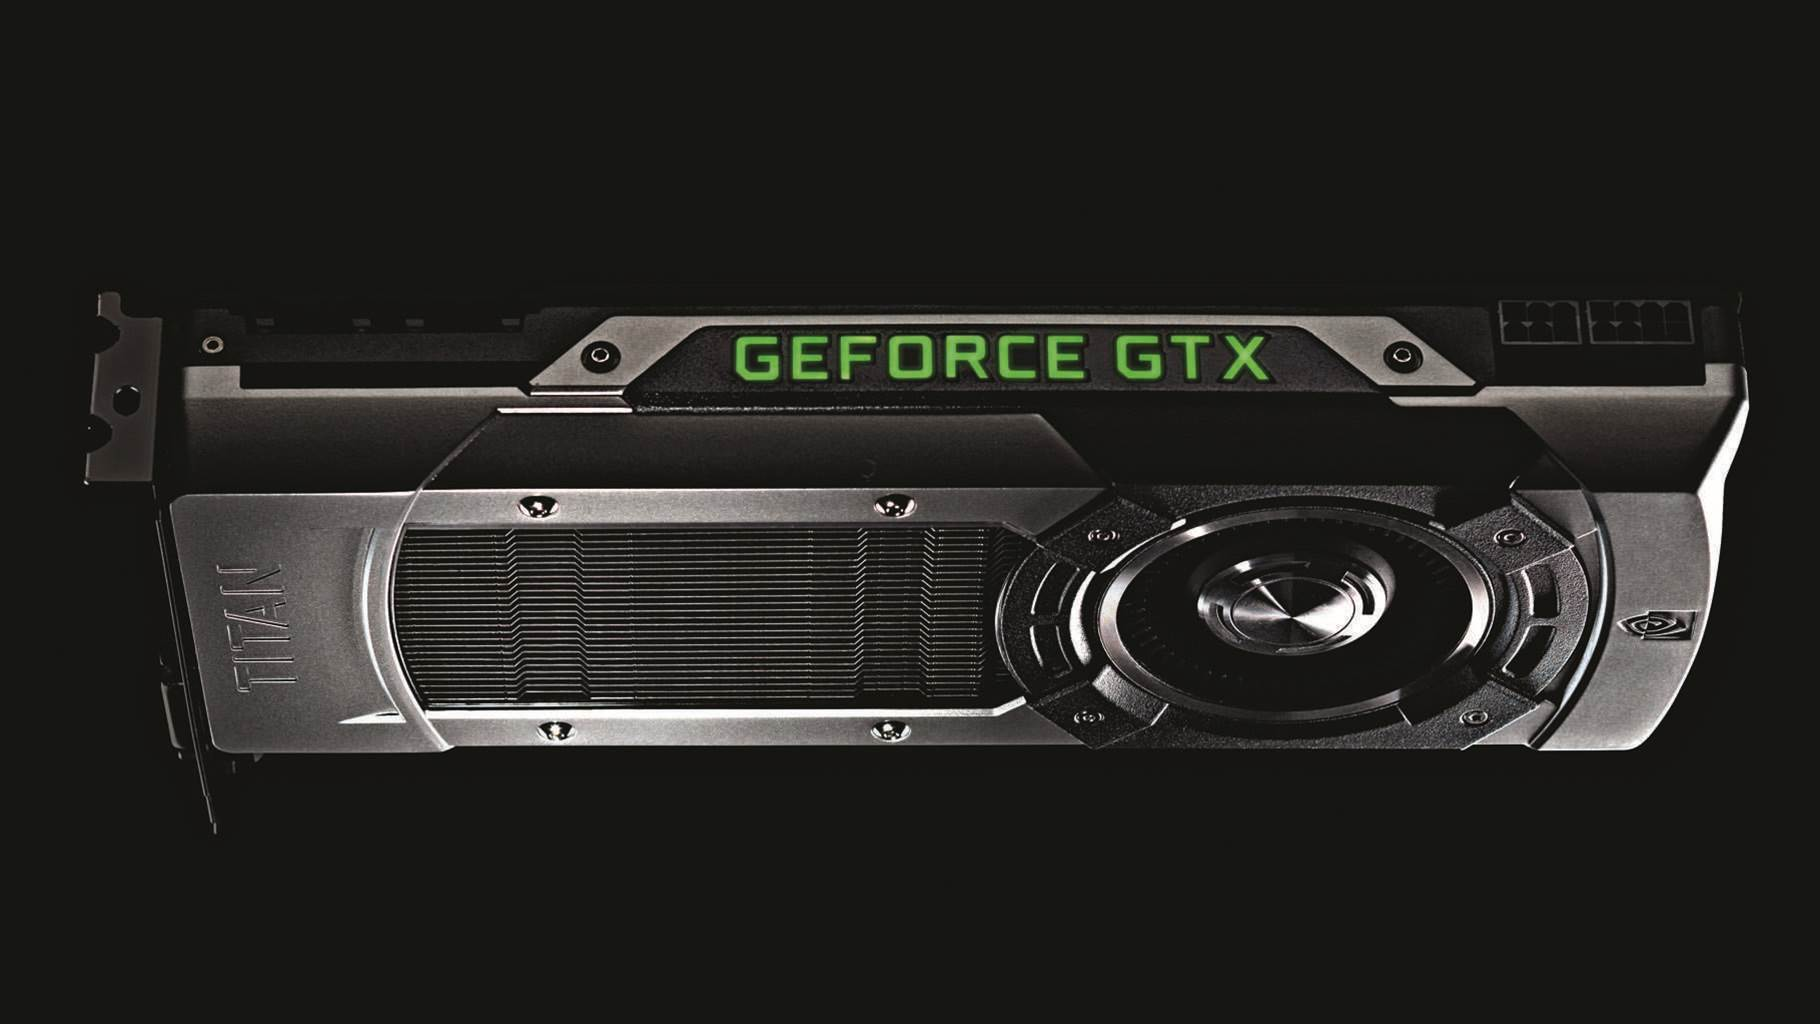 Review: GeForce GTX Titan